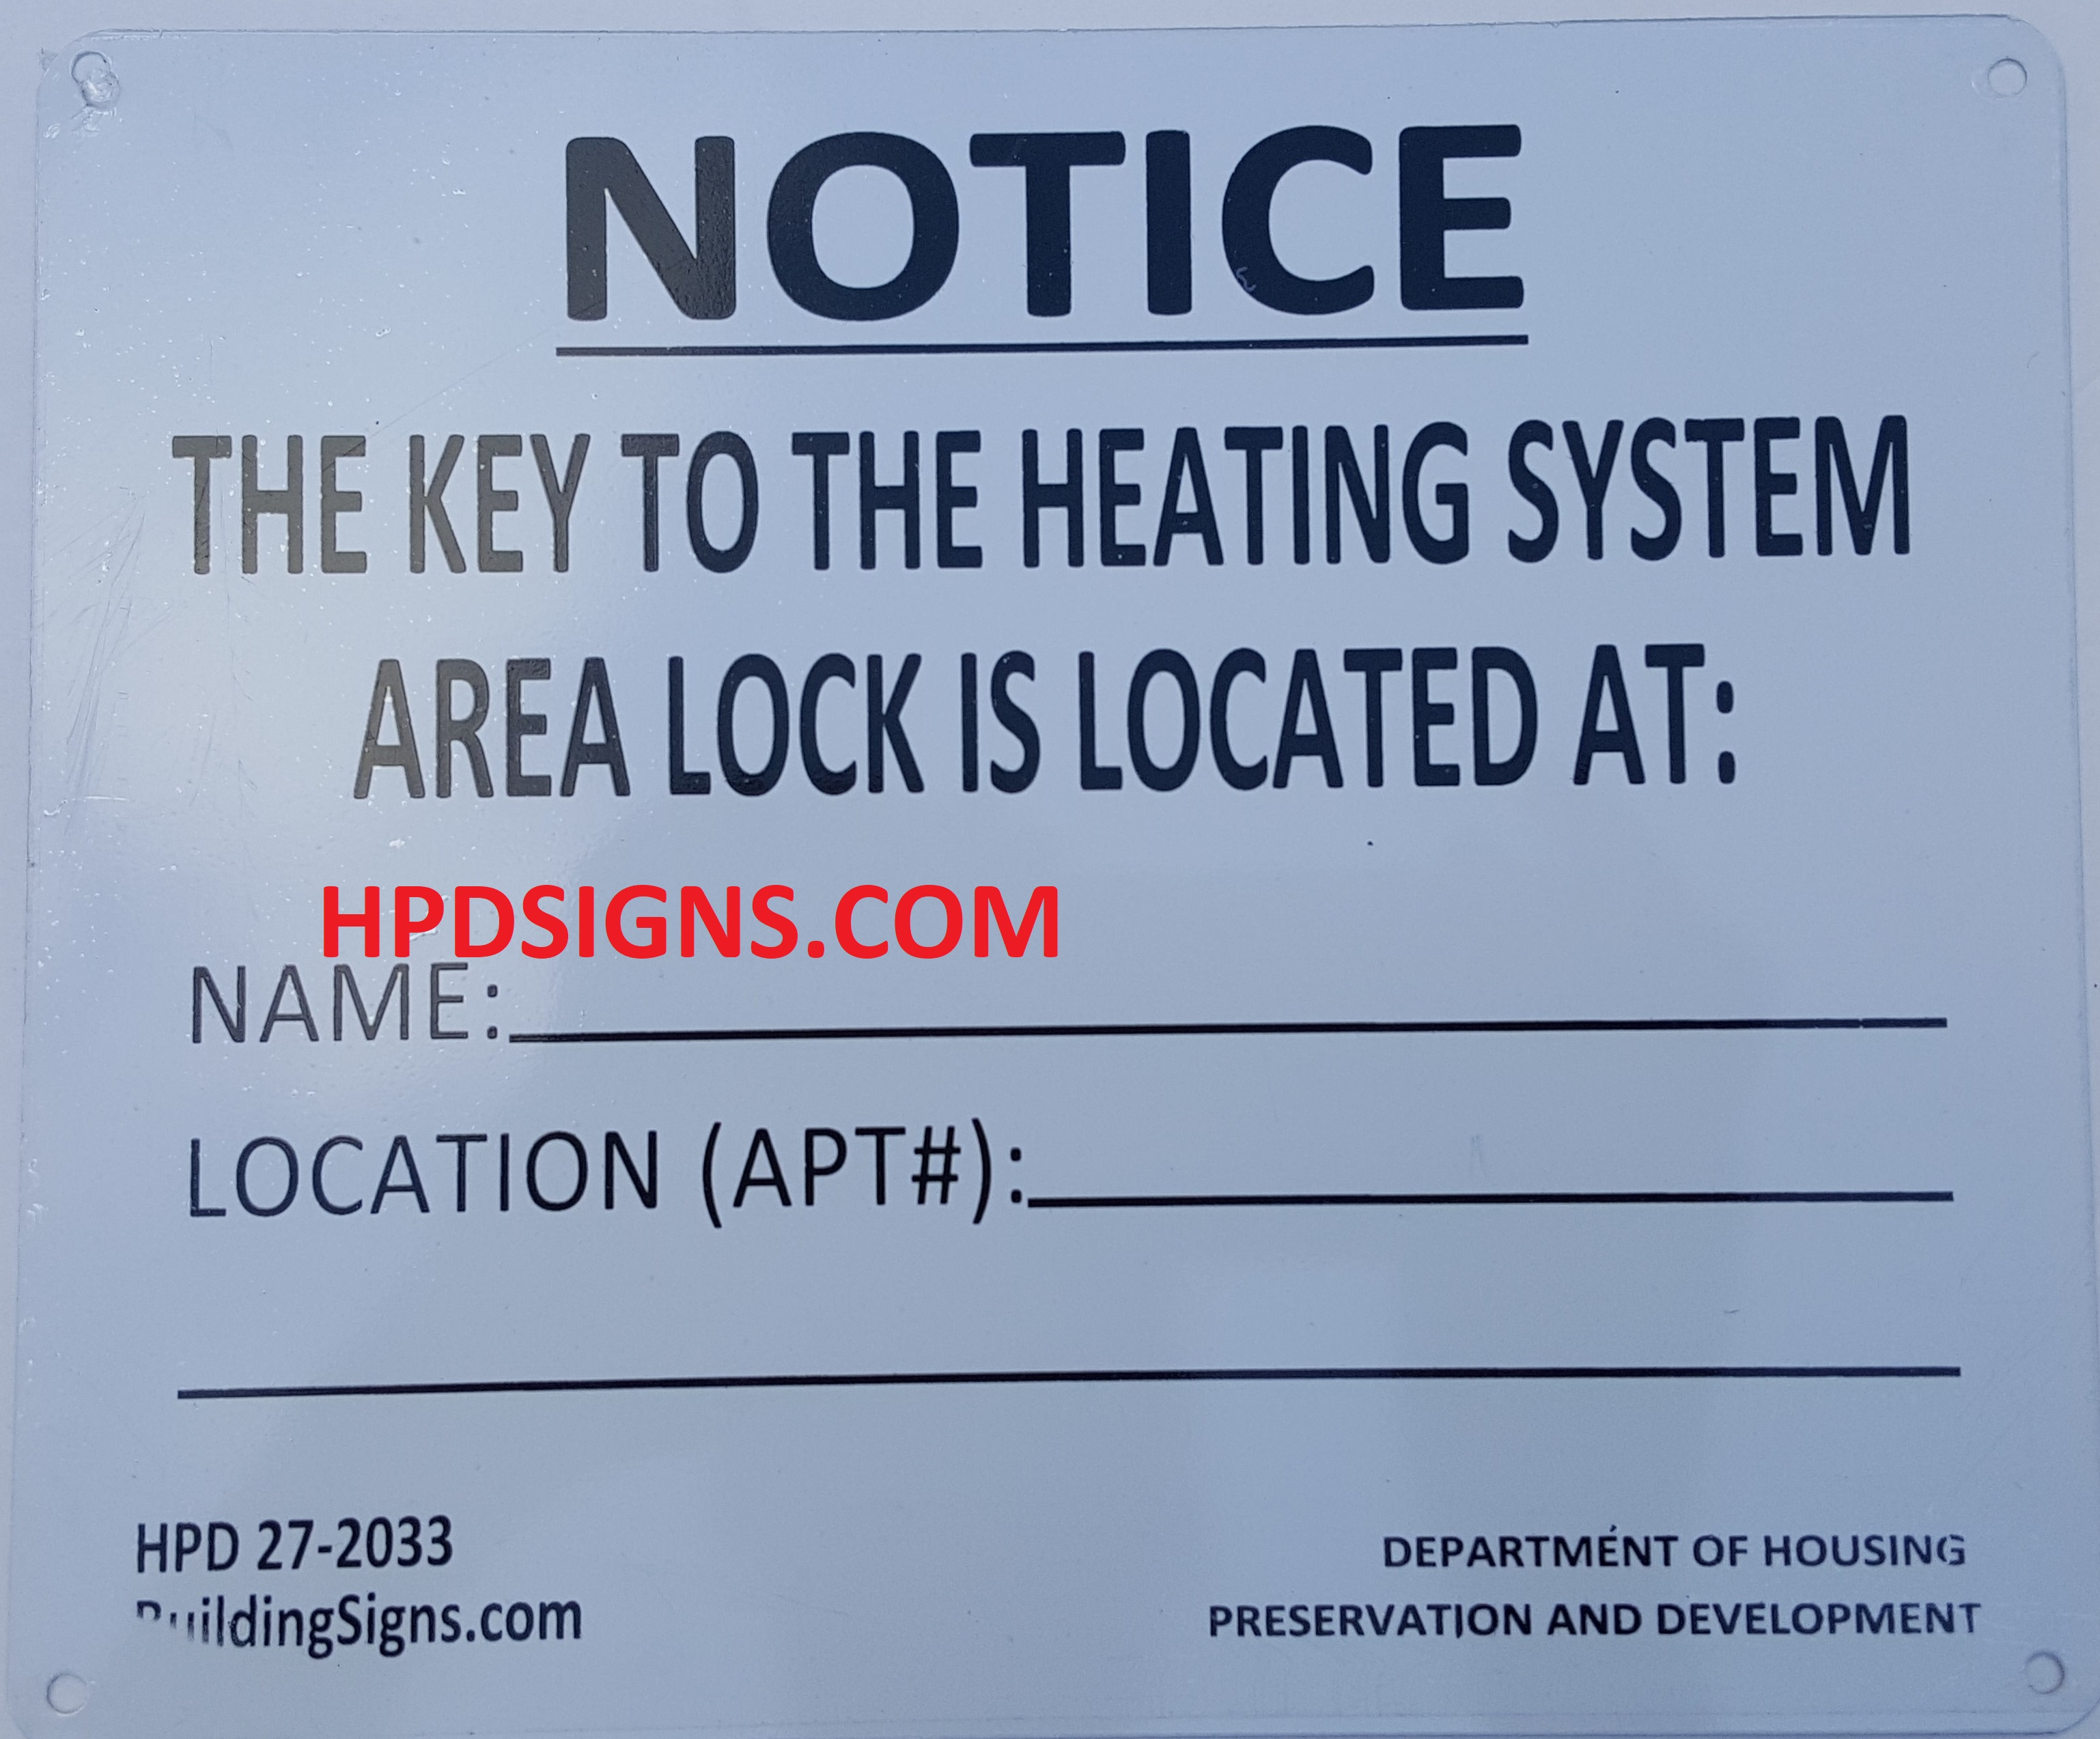 fire-department-sign-key-to-the-heating-system-sign-11-.jpg